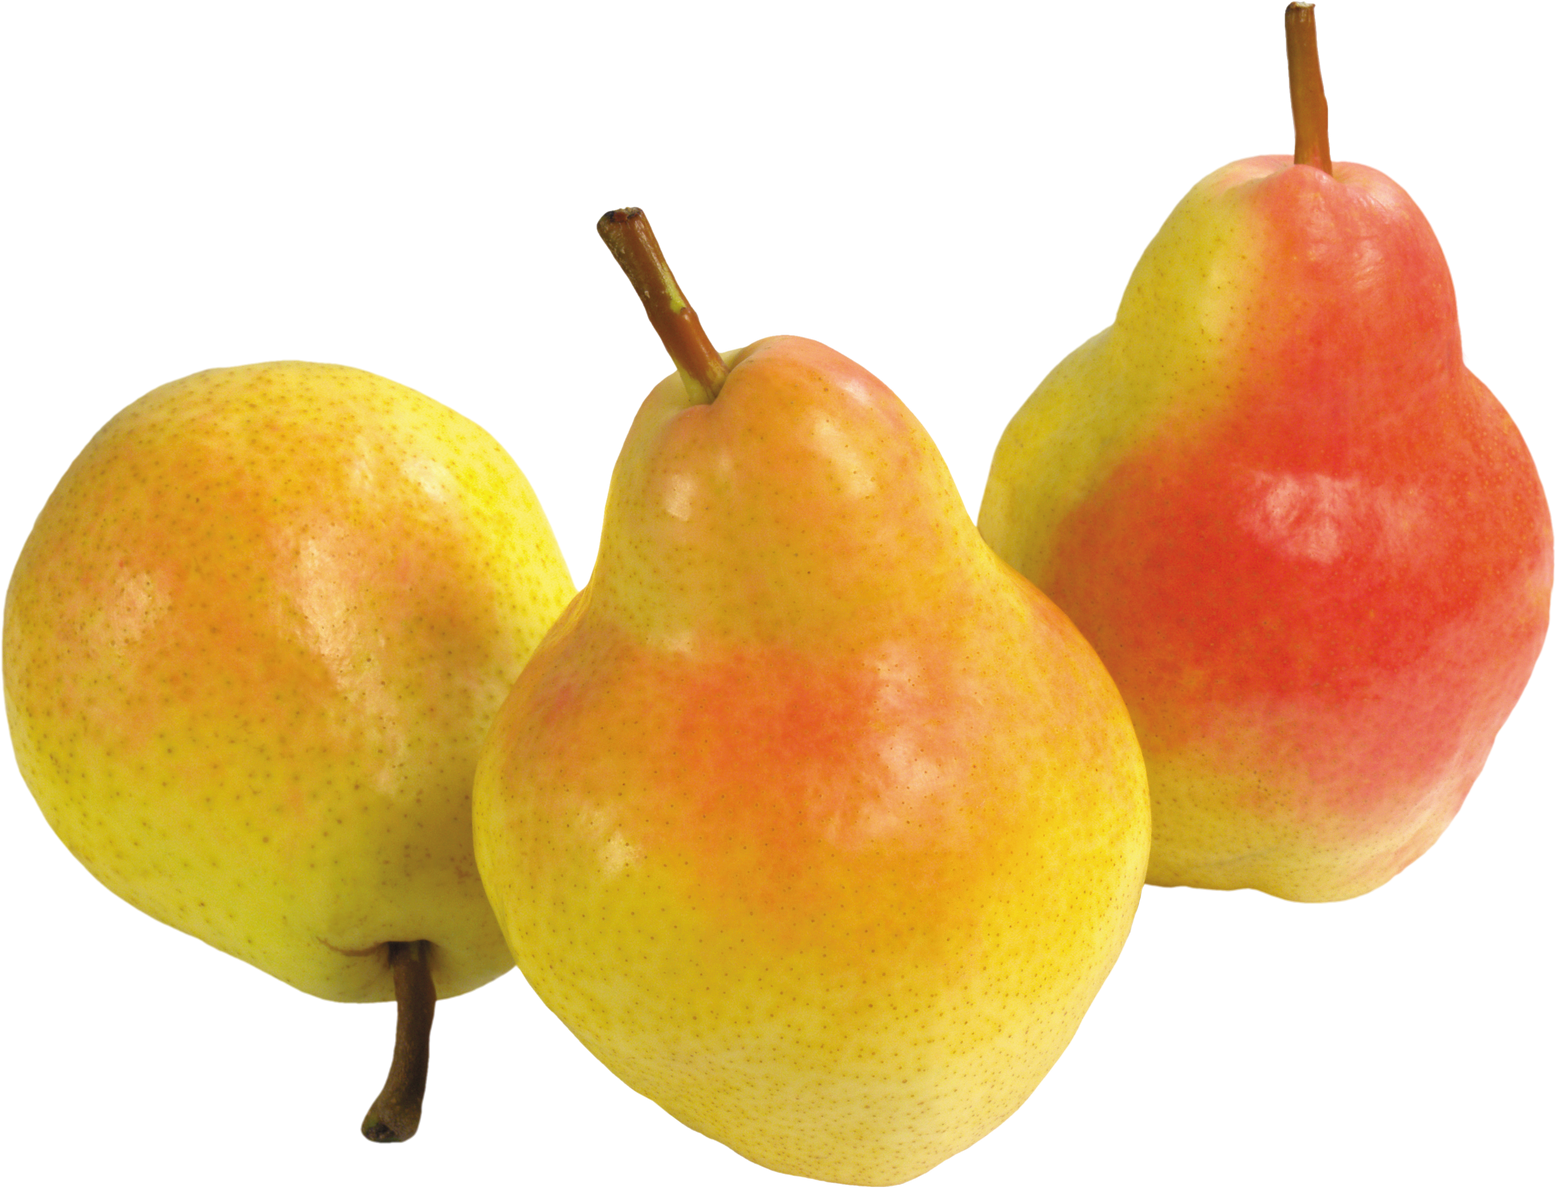 Png image purepng free. Pear clipart 3 fruit